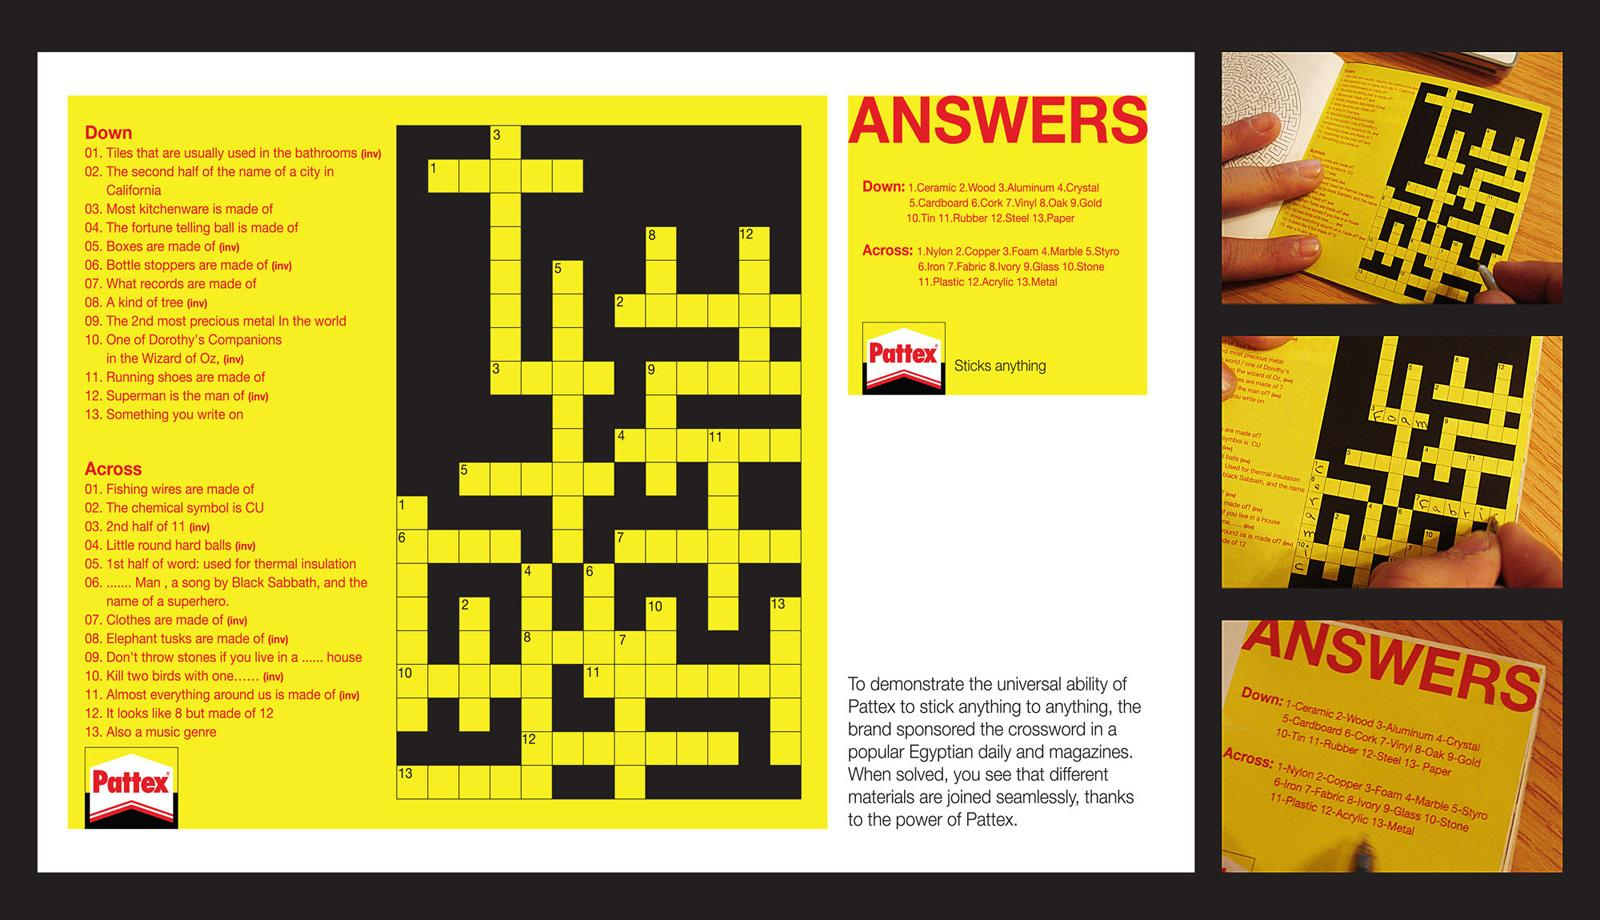 Pattex Print Advert By Tbwa Crossword Puzzle Ads Of The World